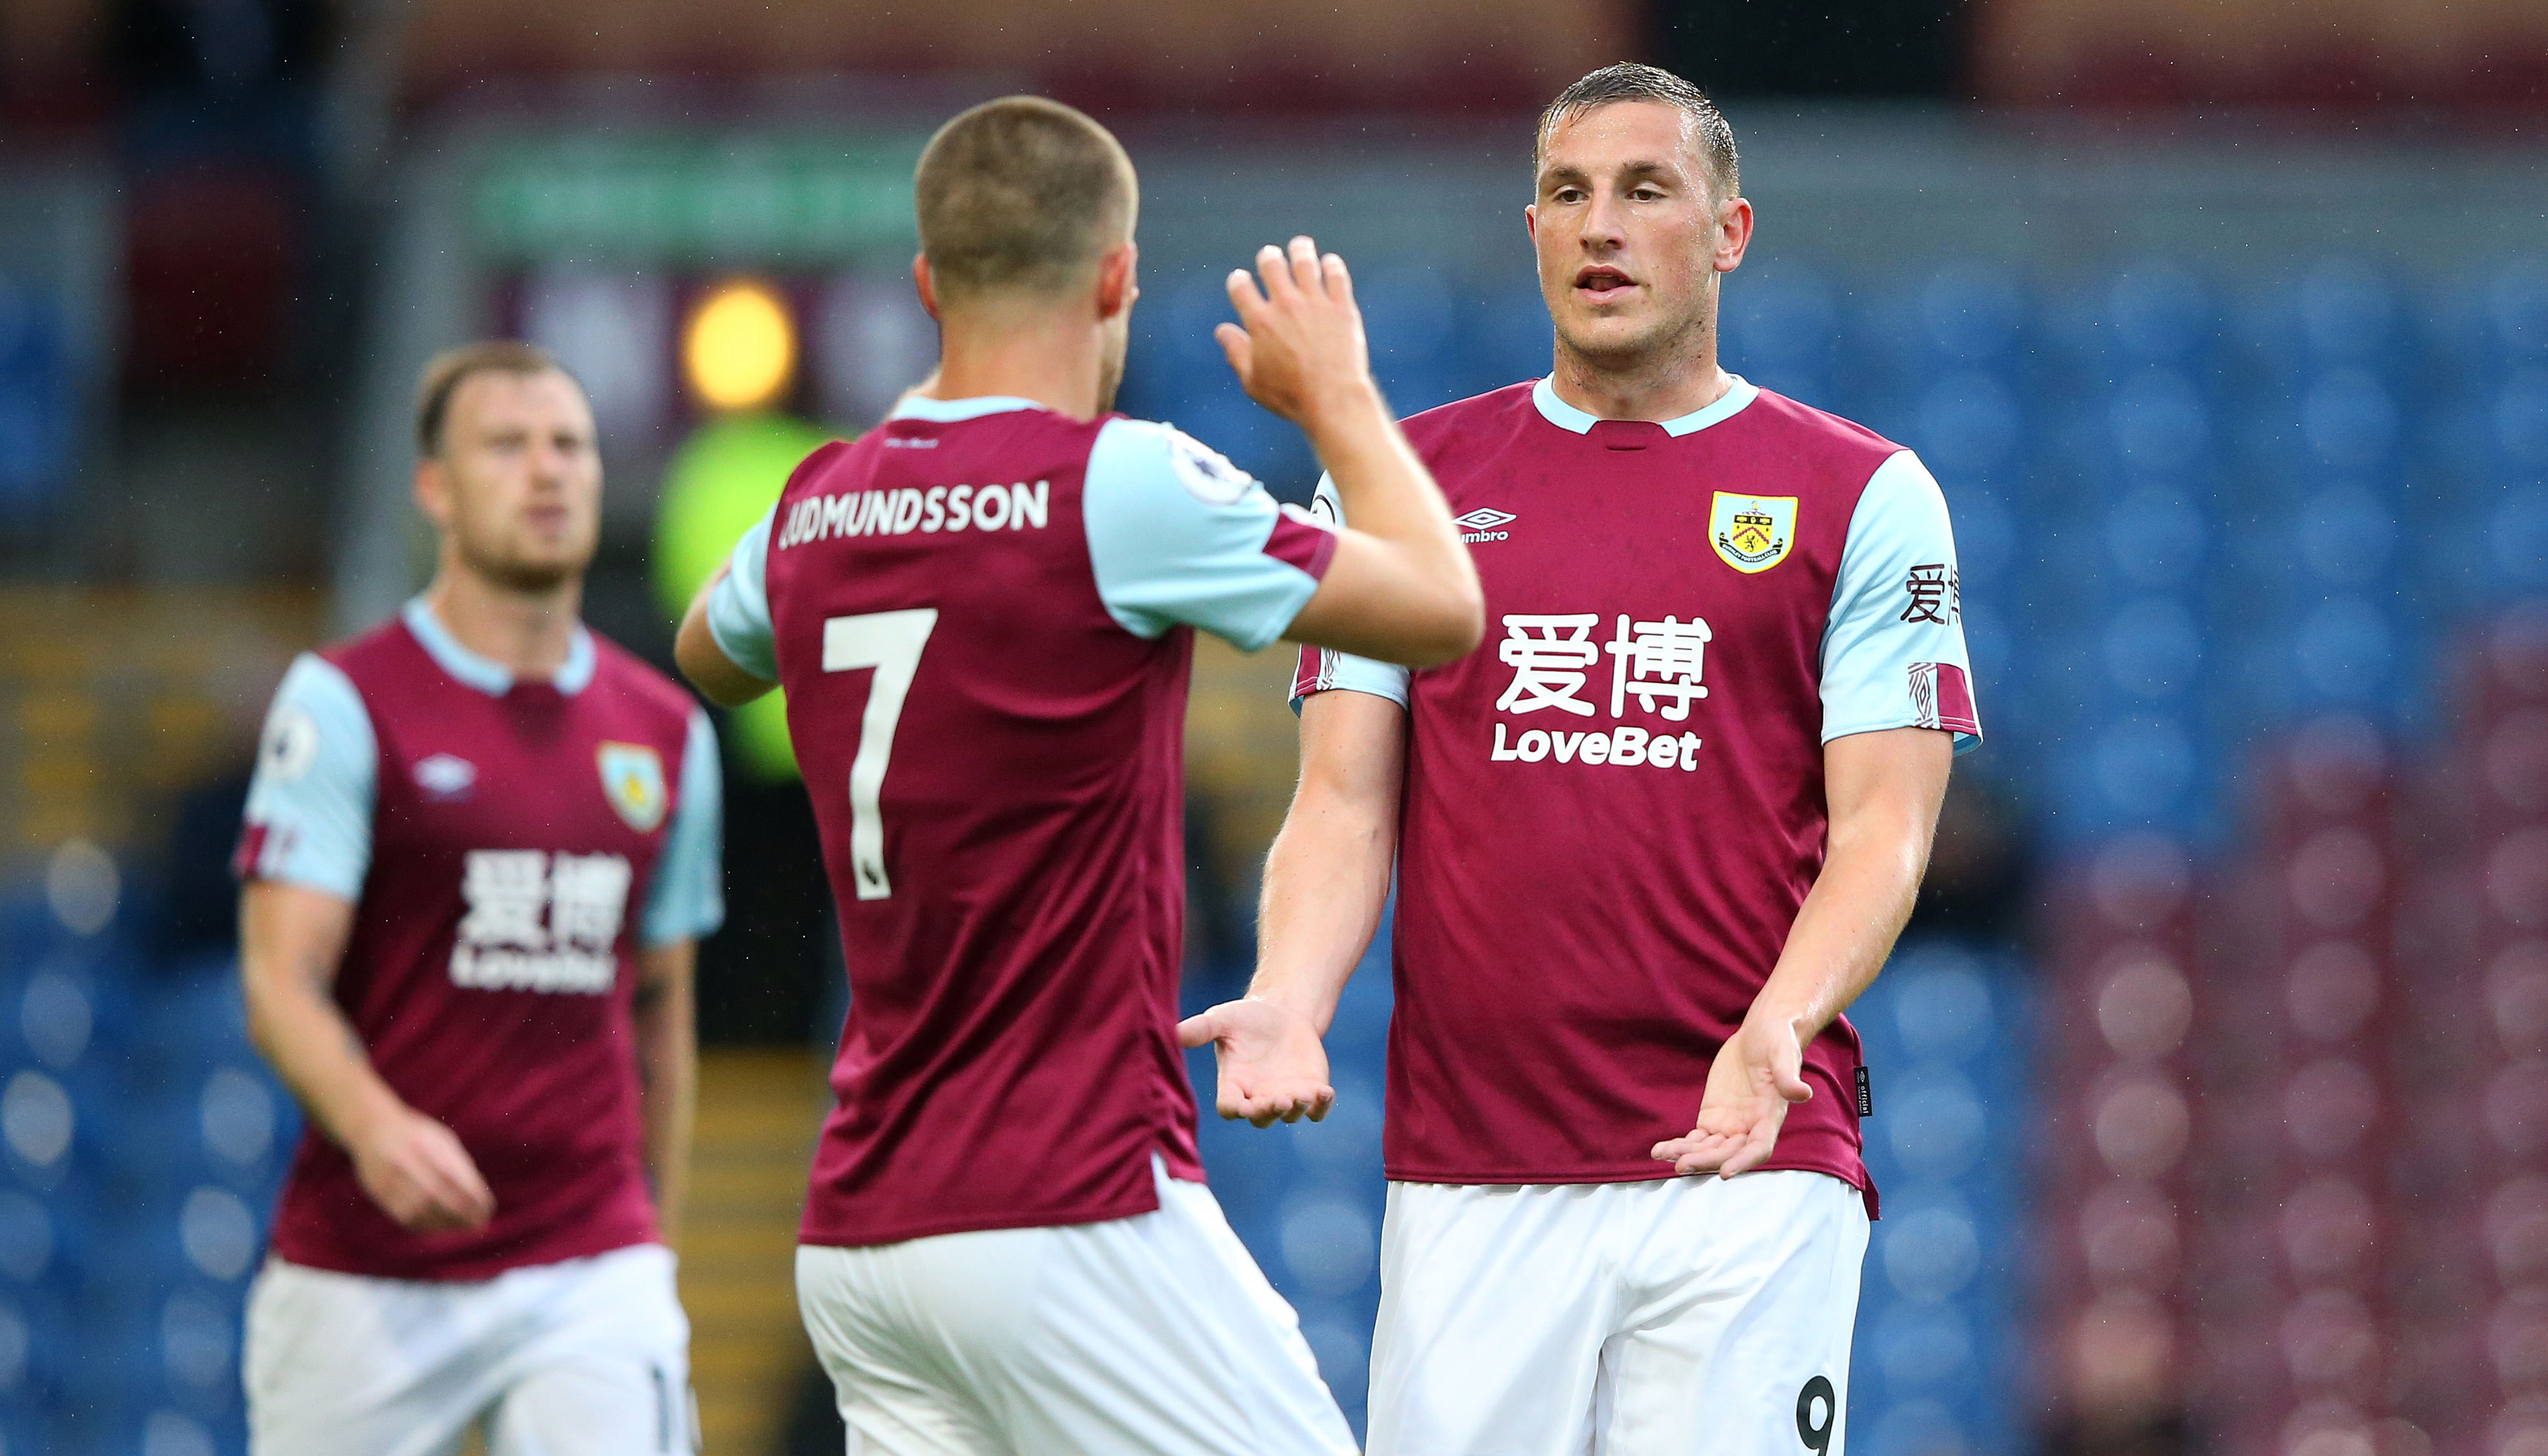 Burnley vs Wolves: Clarets appeal as home underdogs